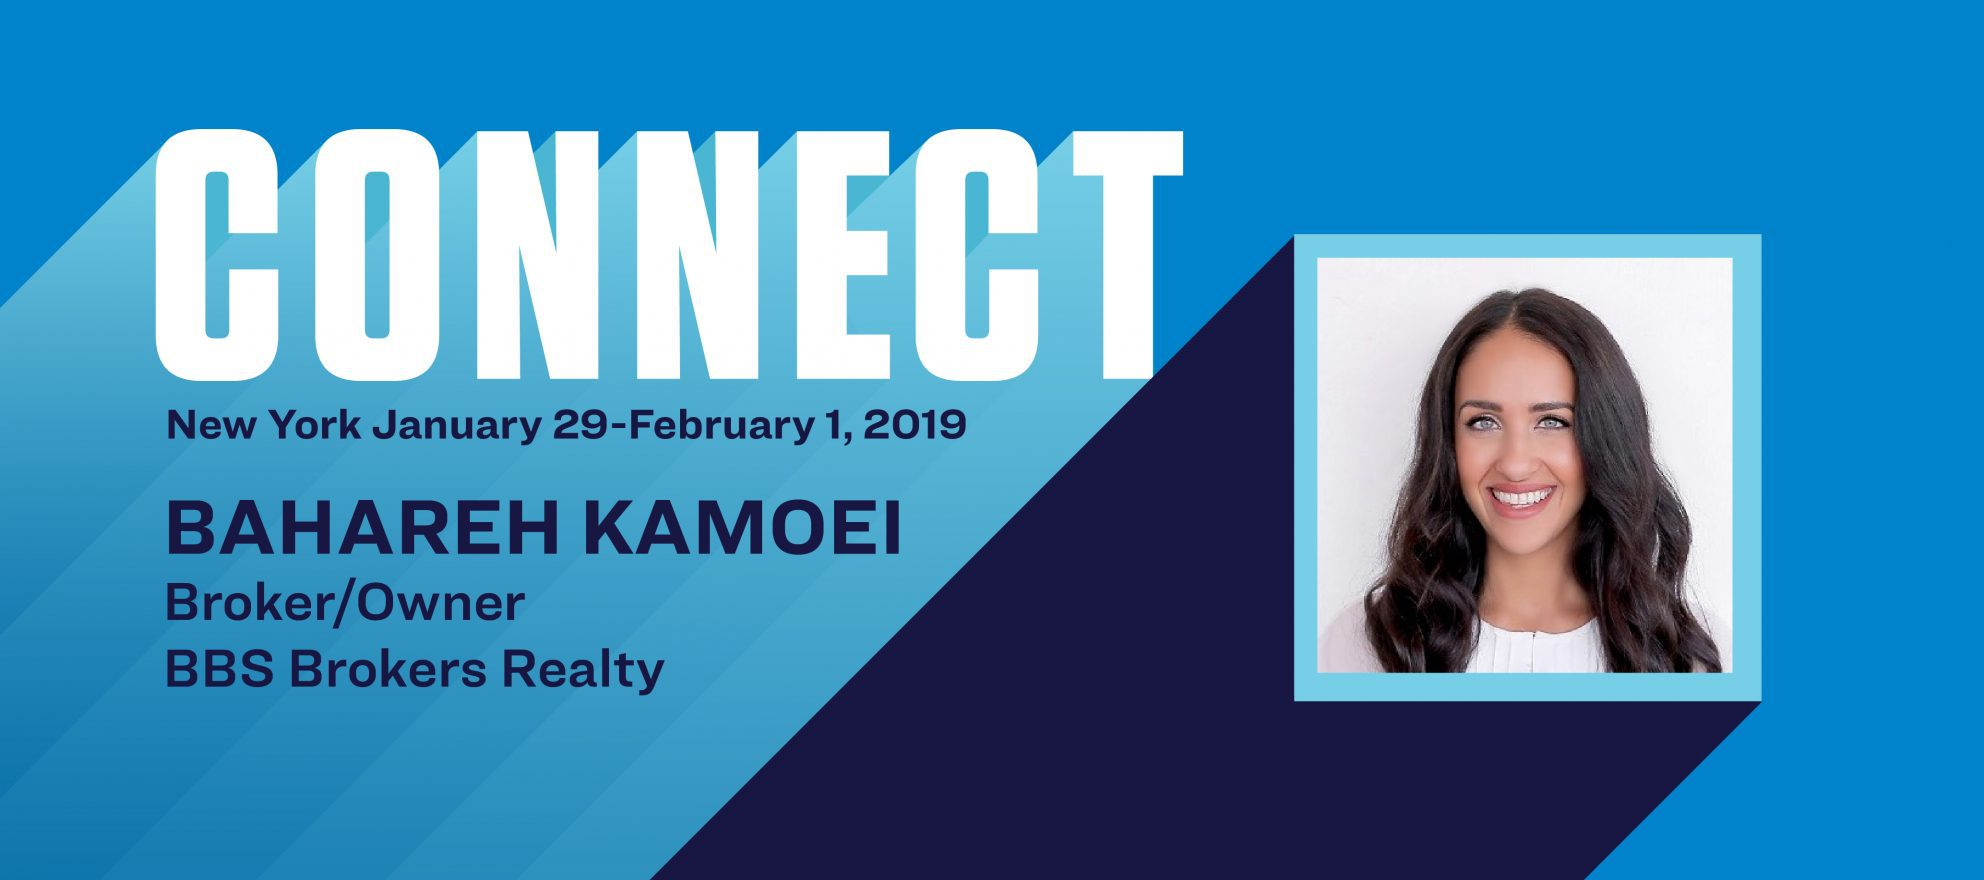 Connect the Speakers: Bahareh Kamoei on brand-building through family